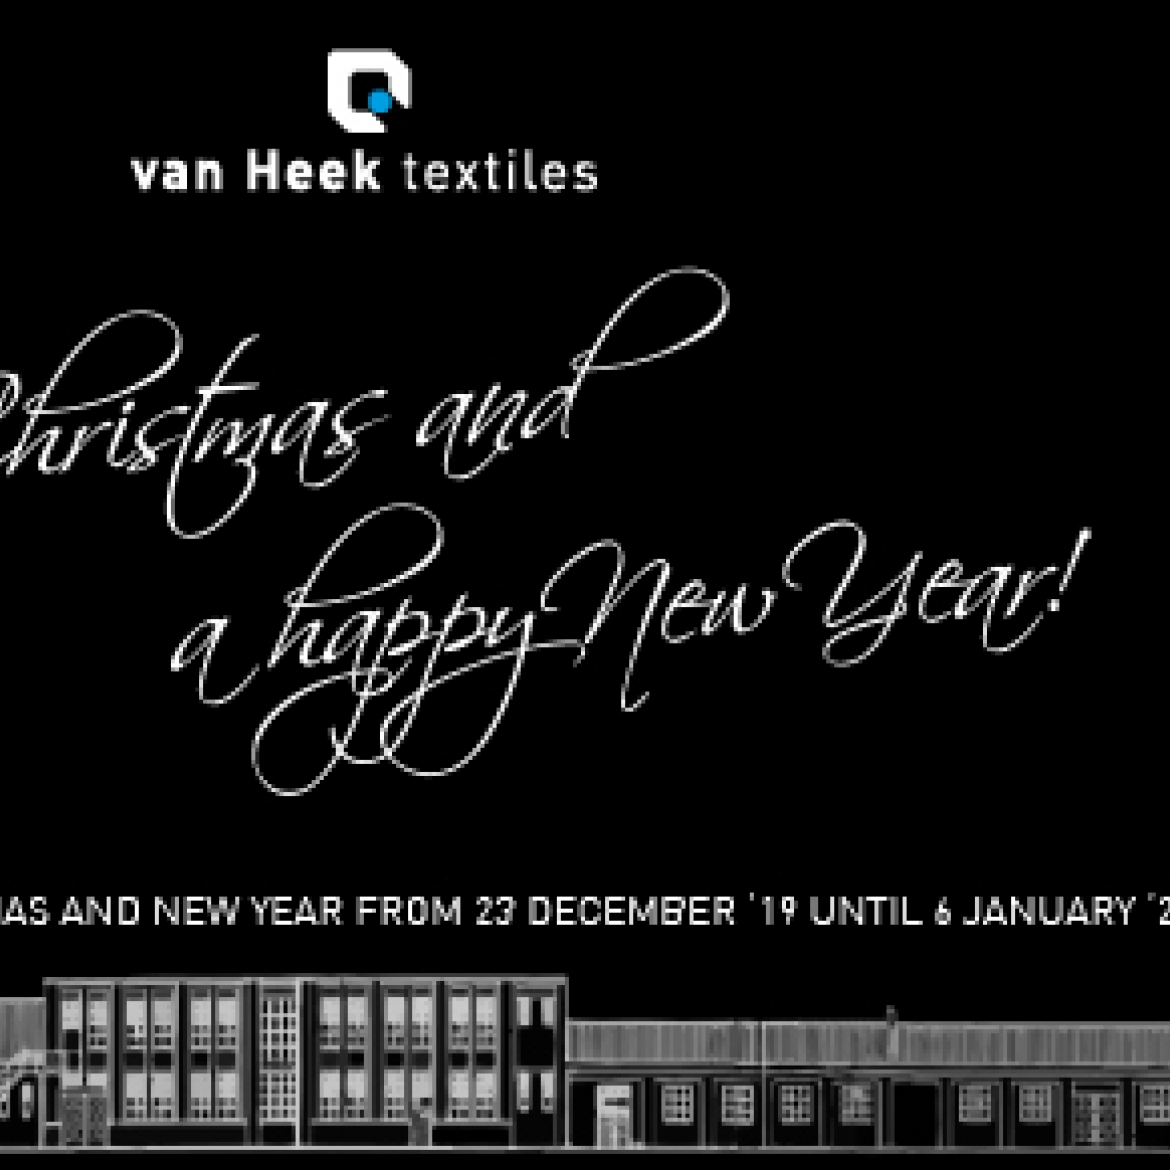 seasons greetings van heek textiles